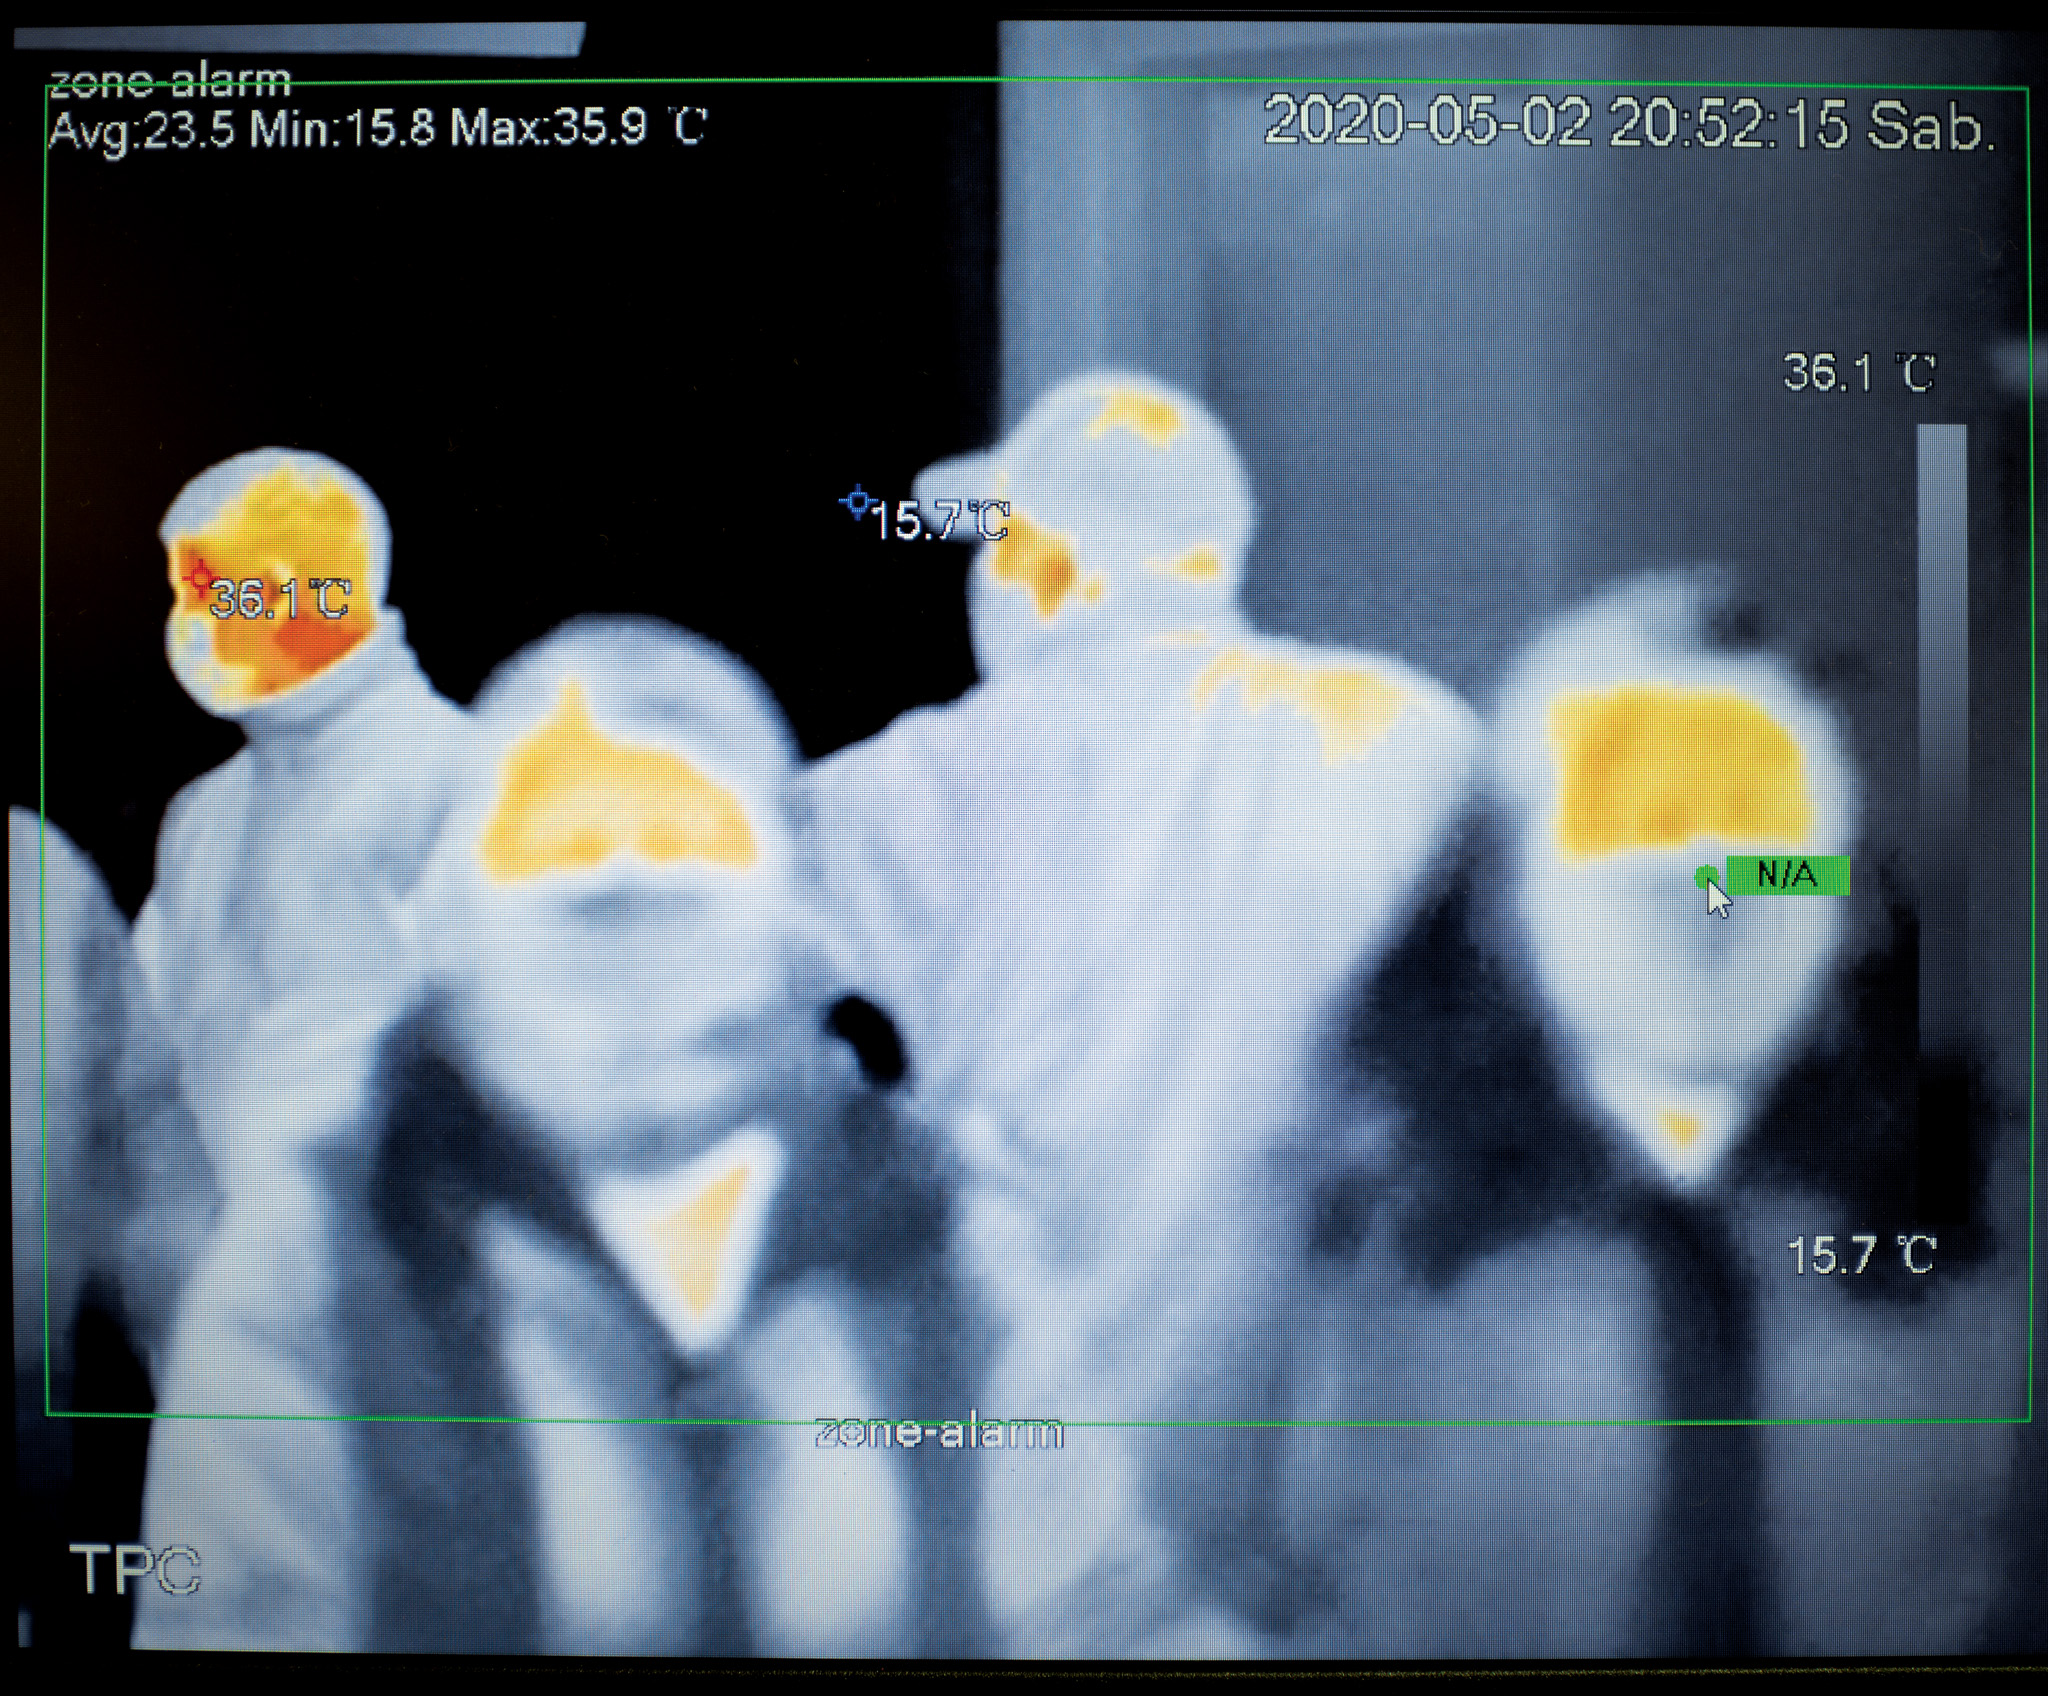 Infrared picture of people walking